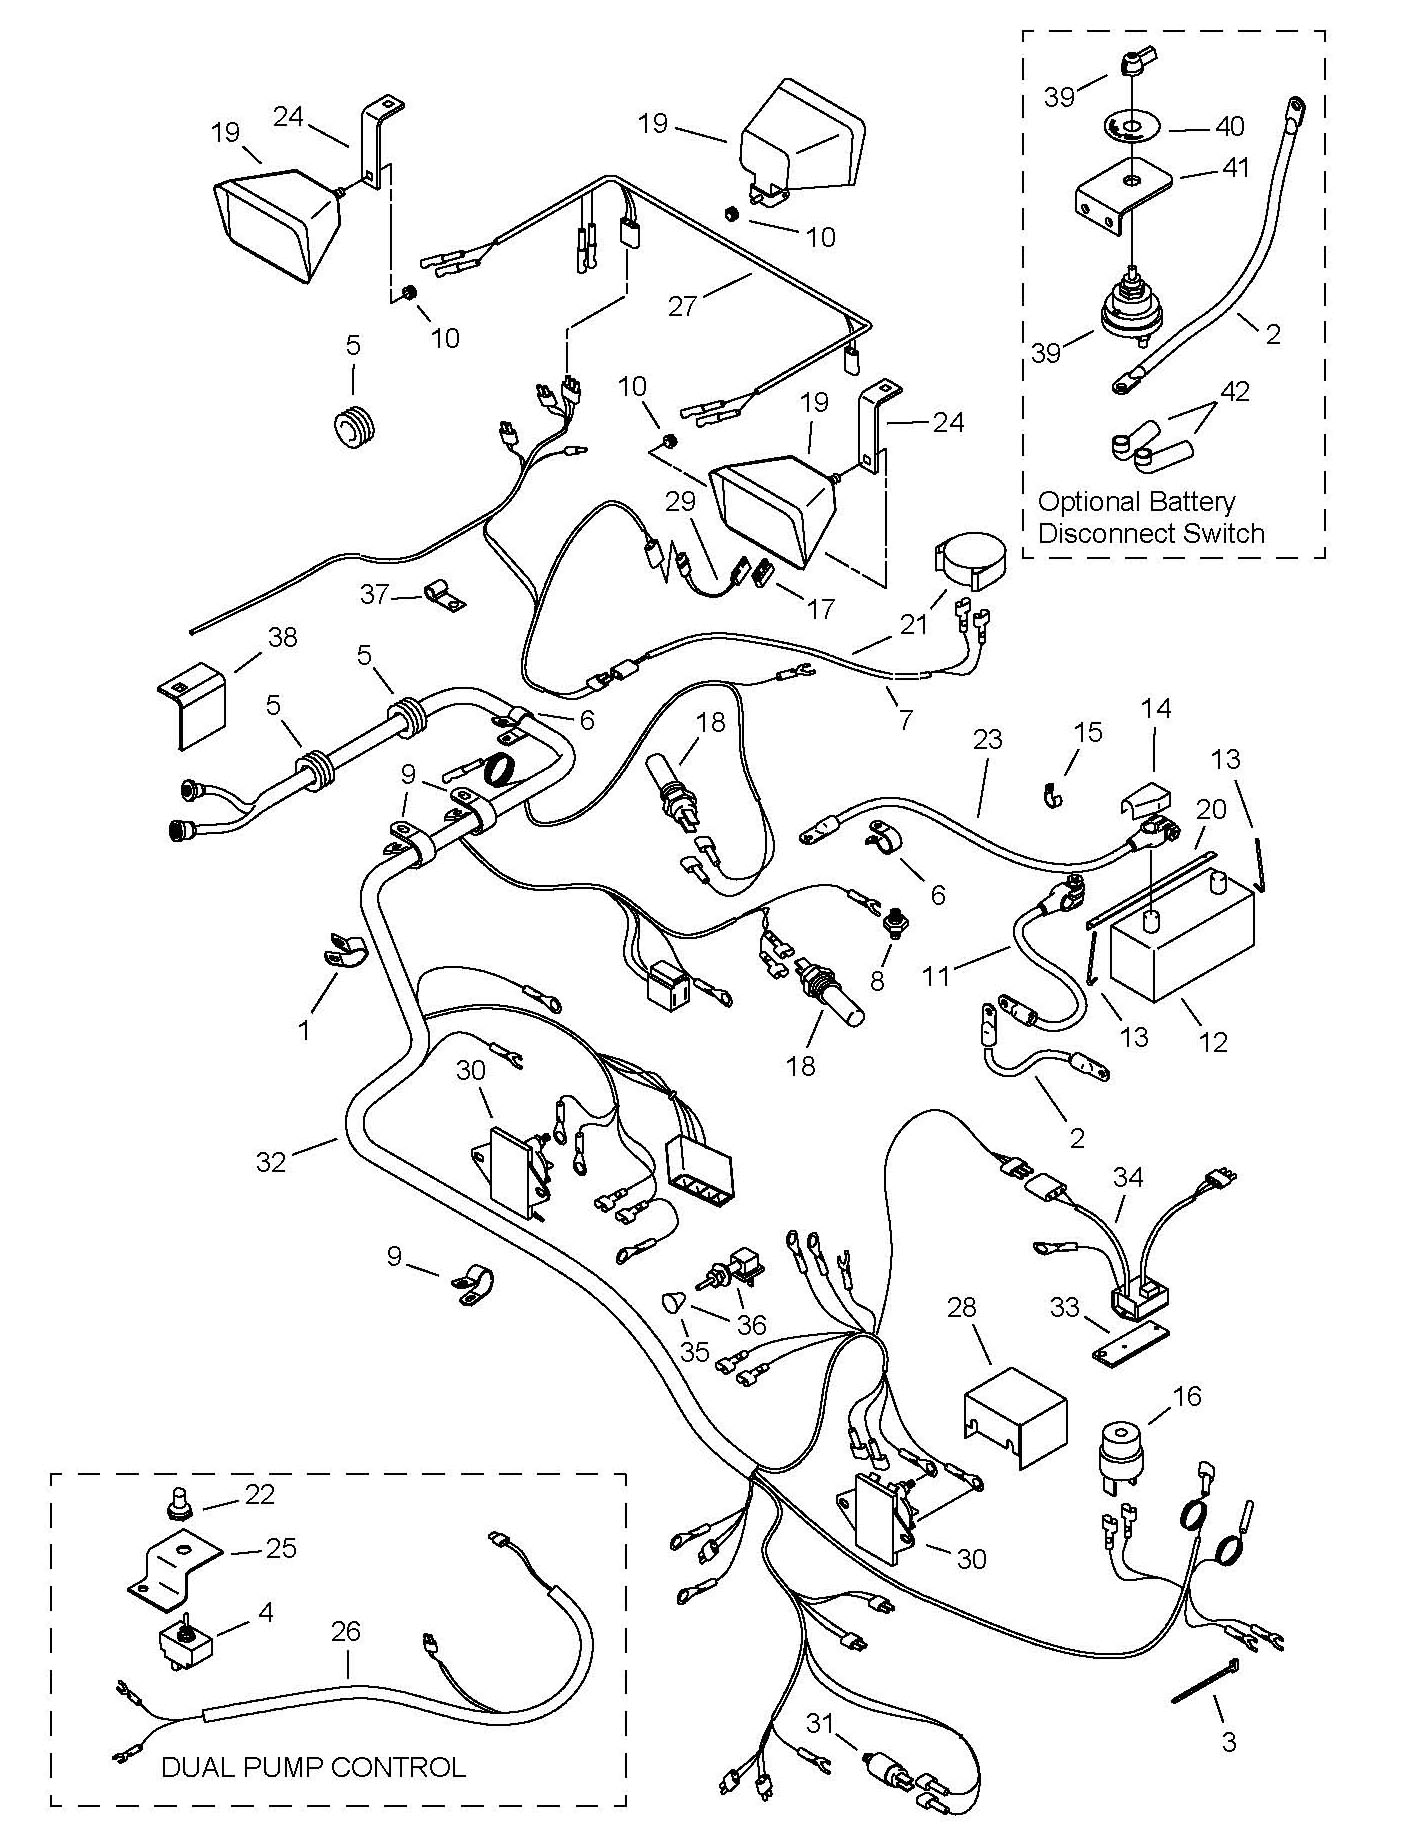 gehl skid loader 4525 4625 4525 4625 sl4625 wiring electrical hover over image for expanded view